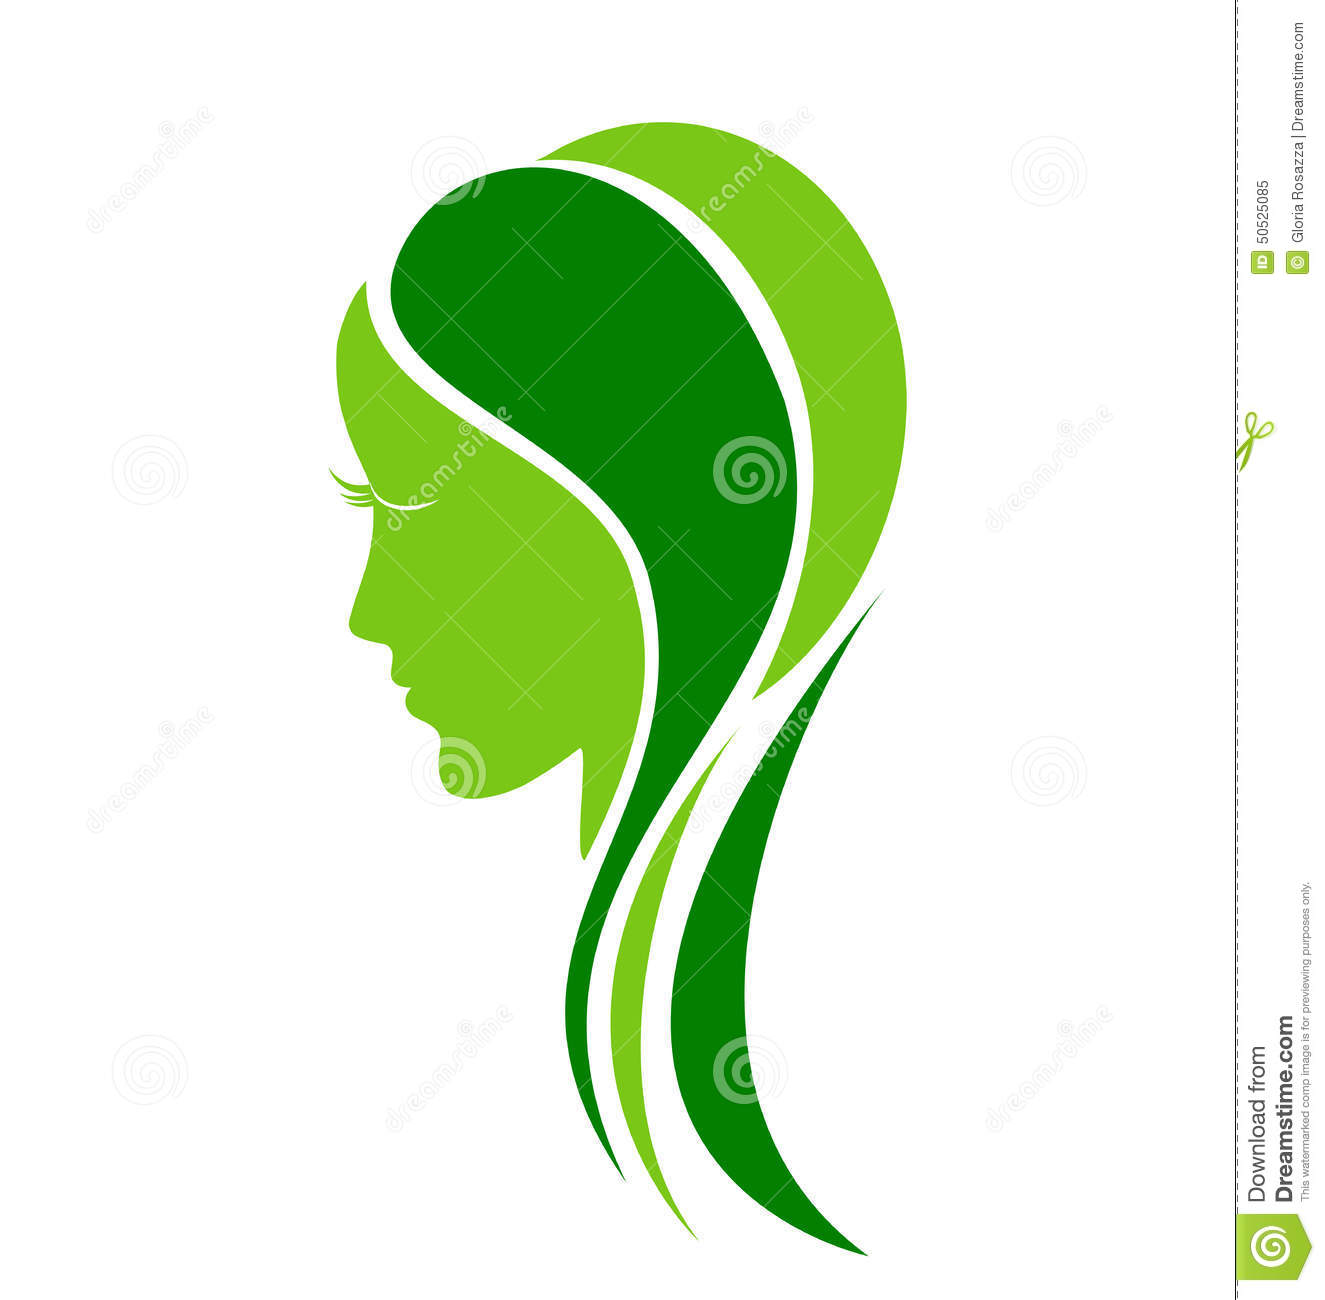 Natural Face Fashion Woman Logo Stock Vector - Image: 50525085